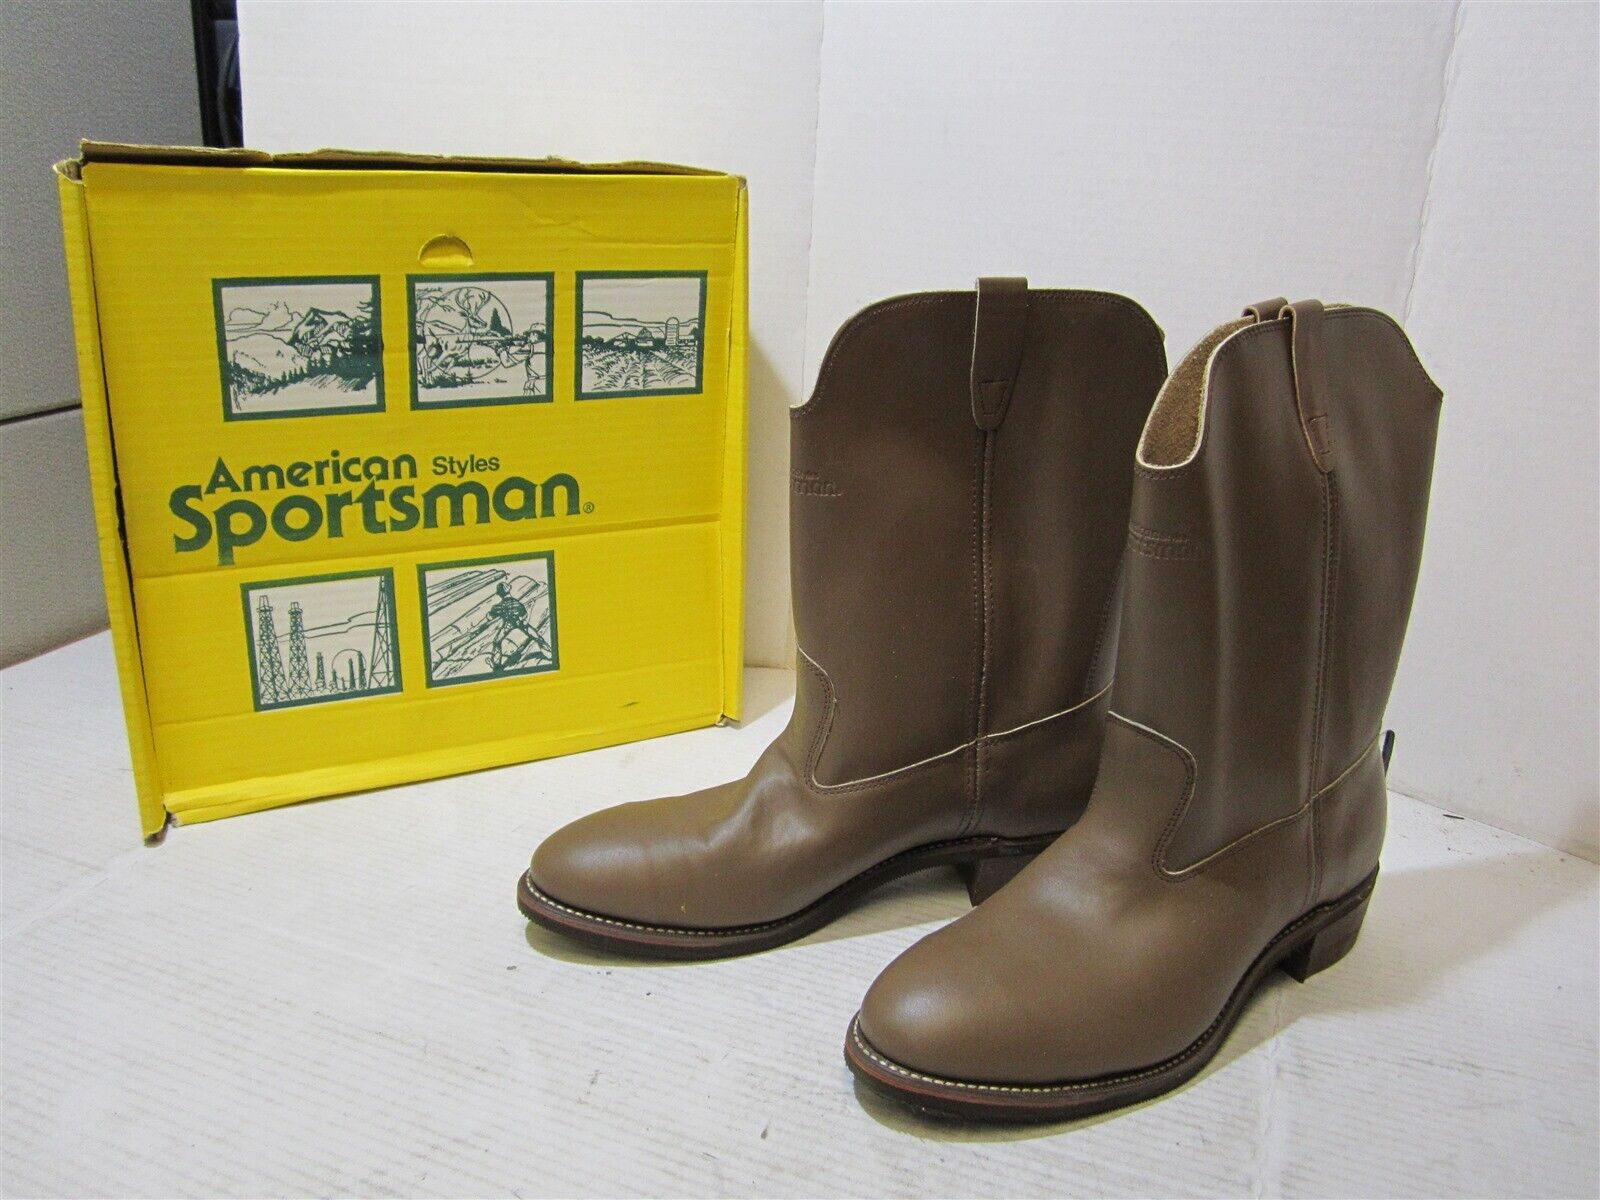 American Styles Sportsman Mens Vintage Brown Neoprene Leather Safety Boots 11 D